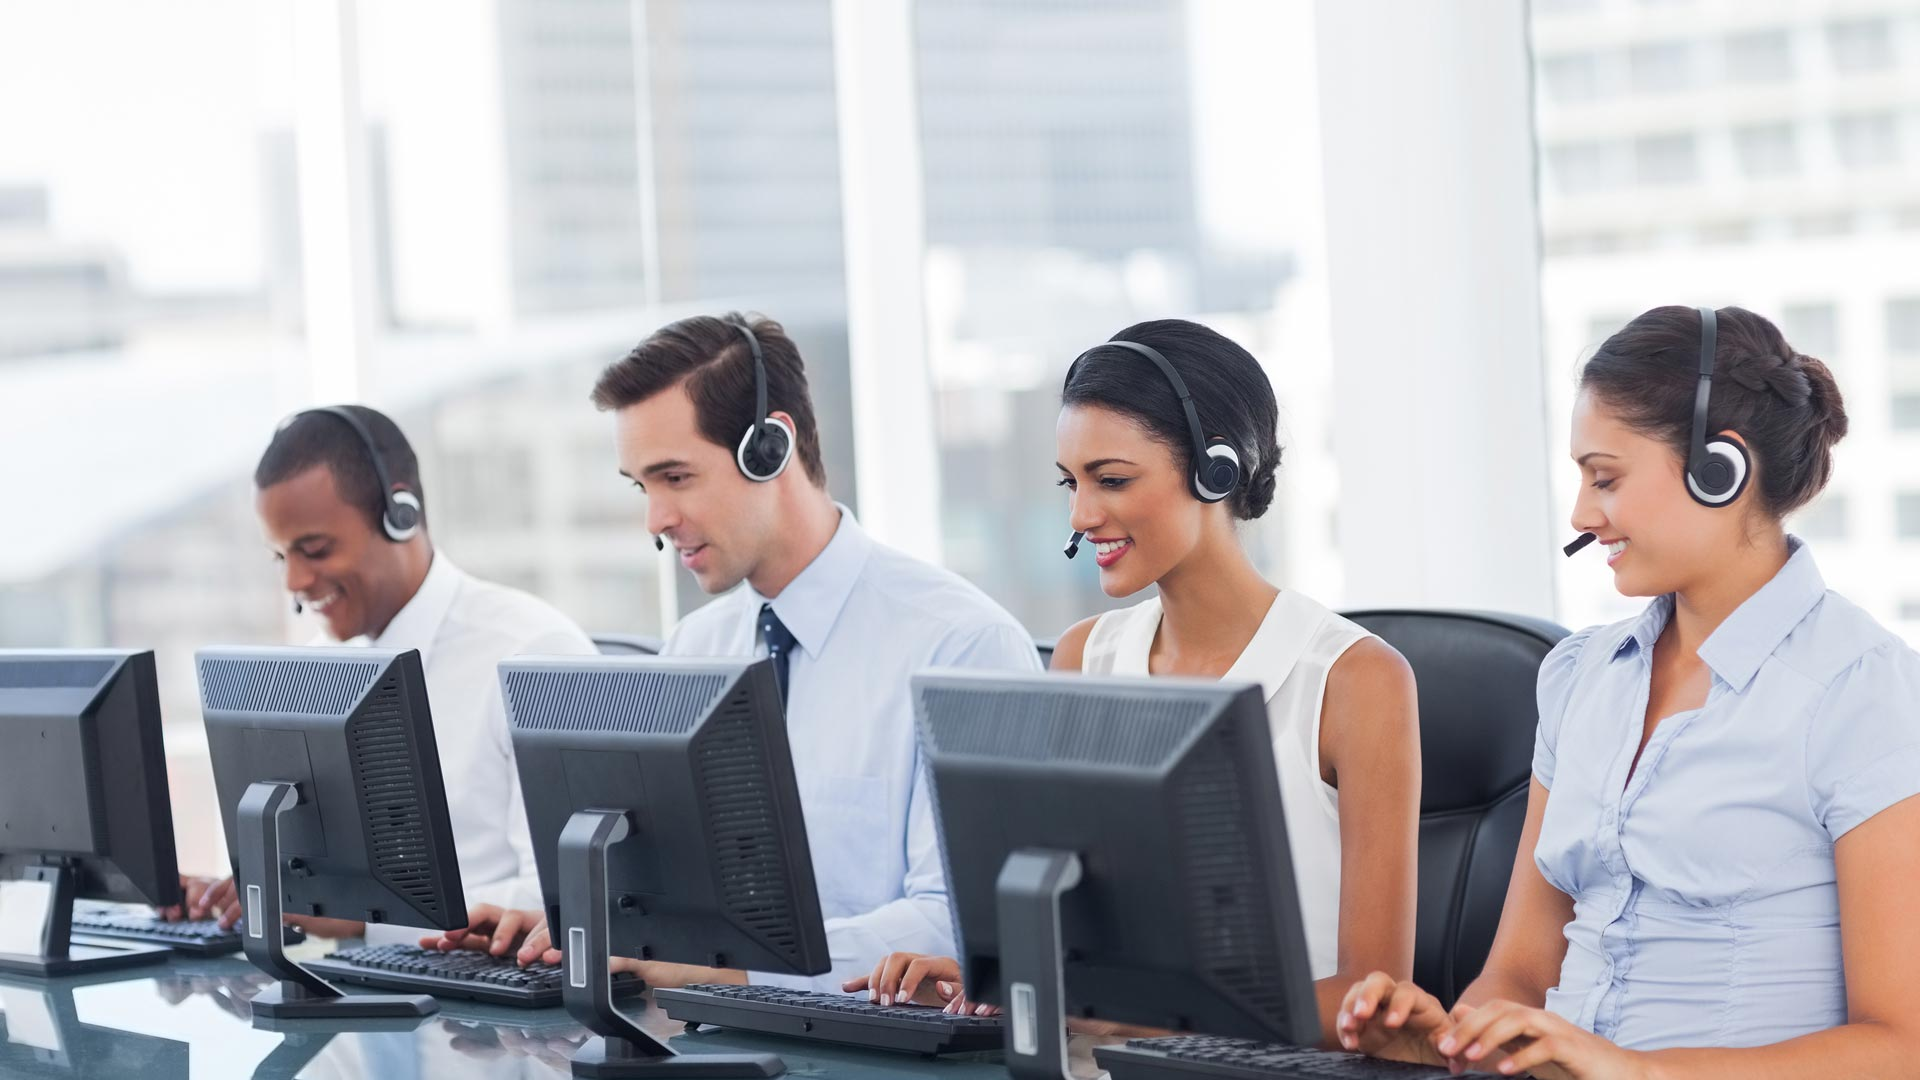 bpo call centre Bpo vs call center bpo and call center are very similar concepts and have become very common p0lace terms these days however, difference between a bpo and call center is what confuses many and it is easy to see why.